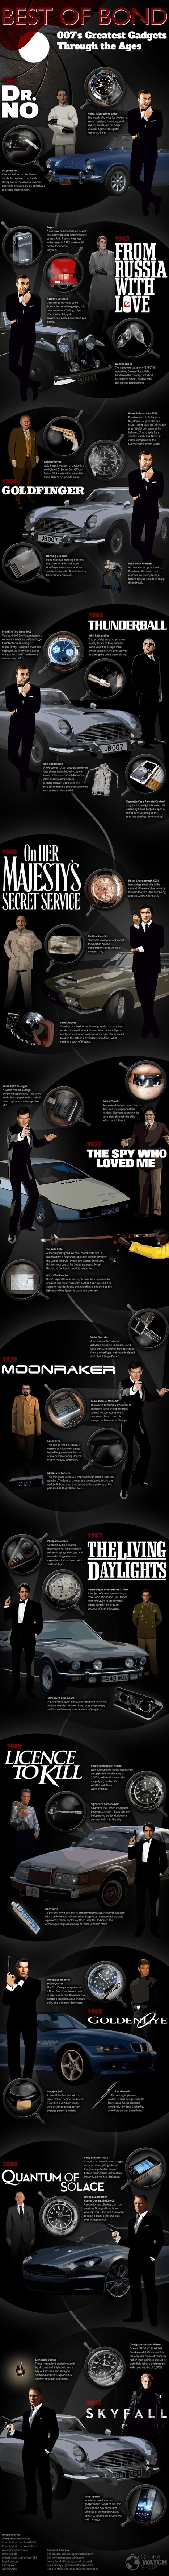 Best of Bond 007's Greatest Gadget Through Ages | All Infographics | Scoop.it